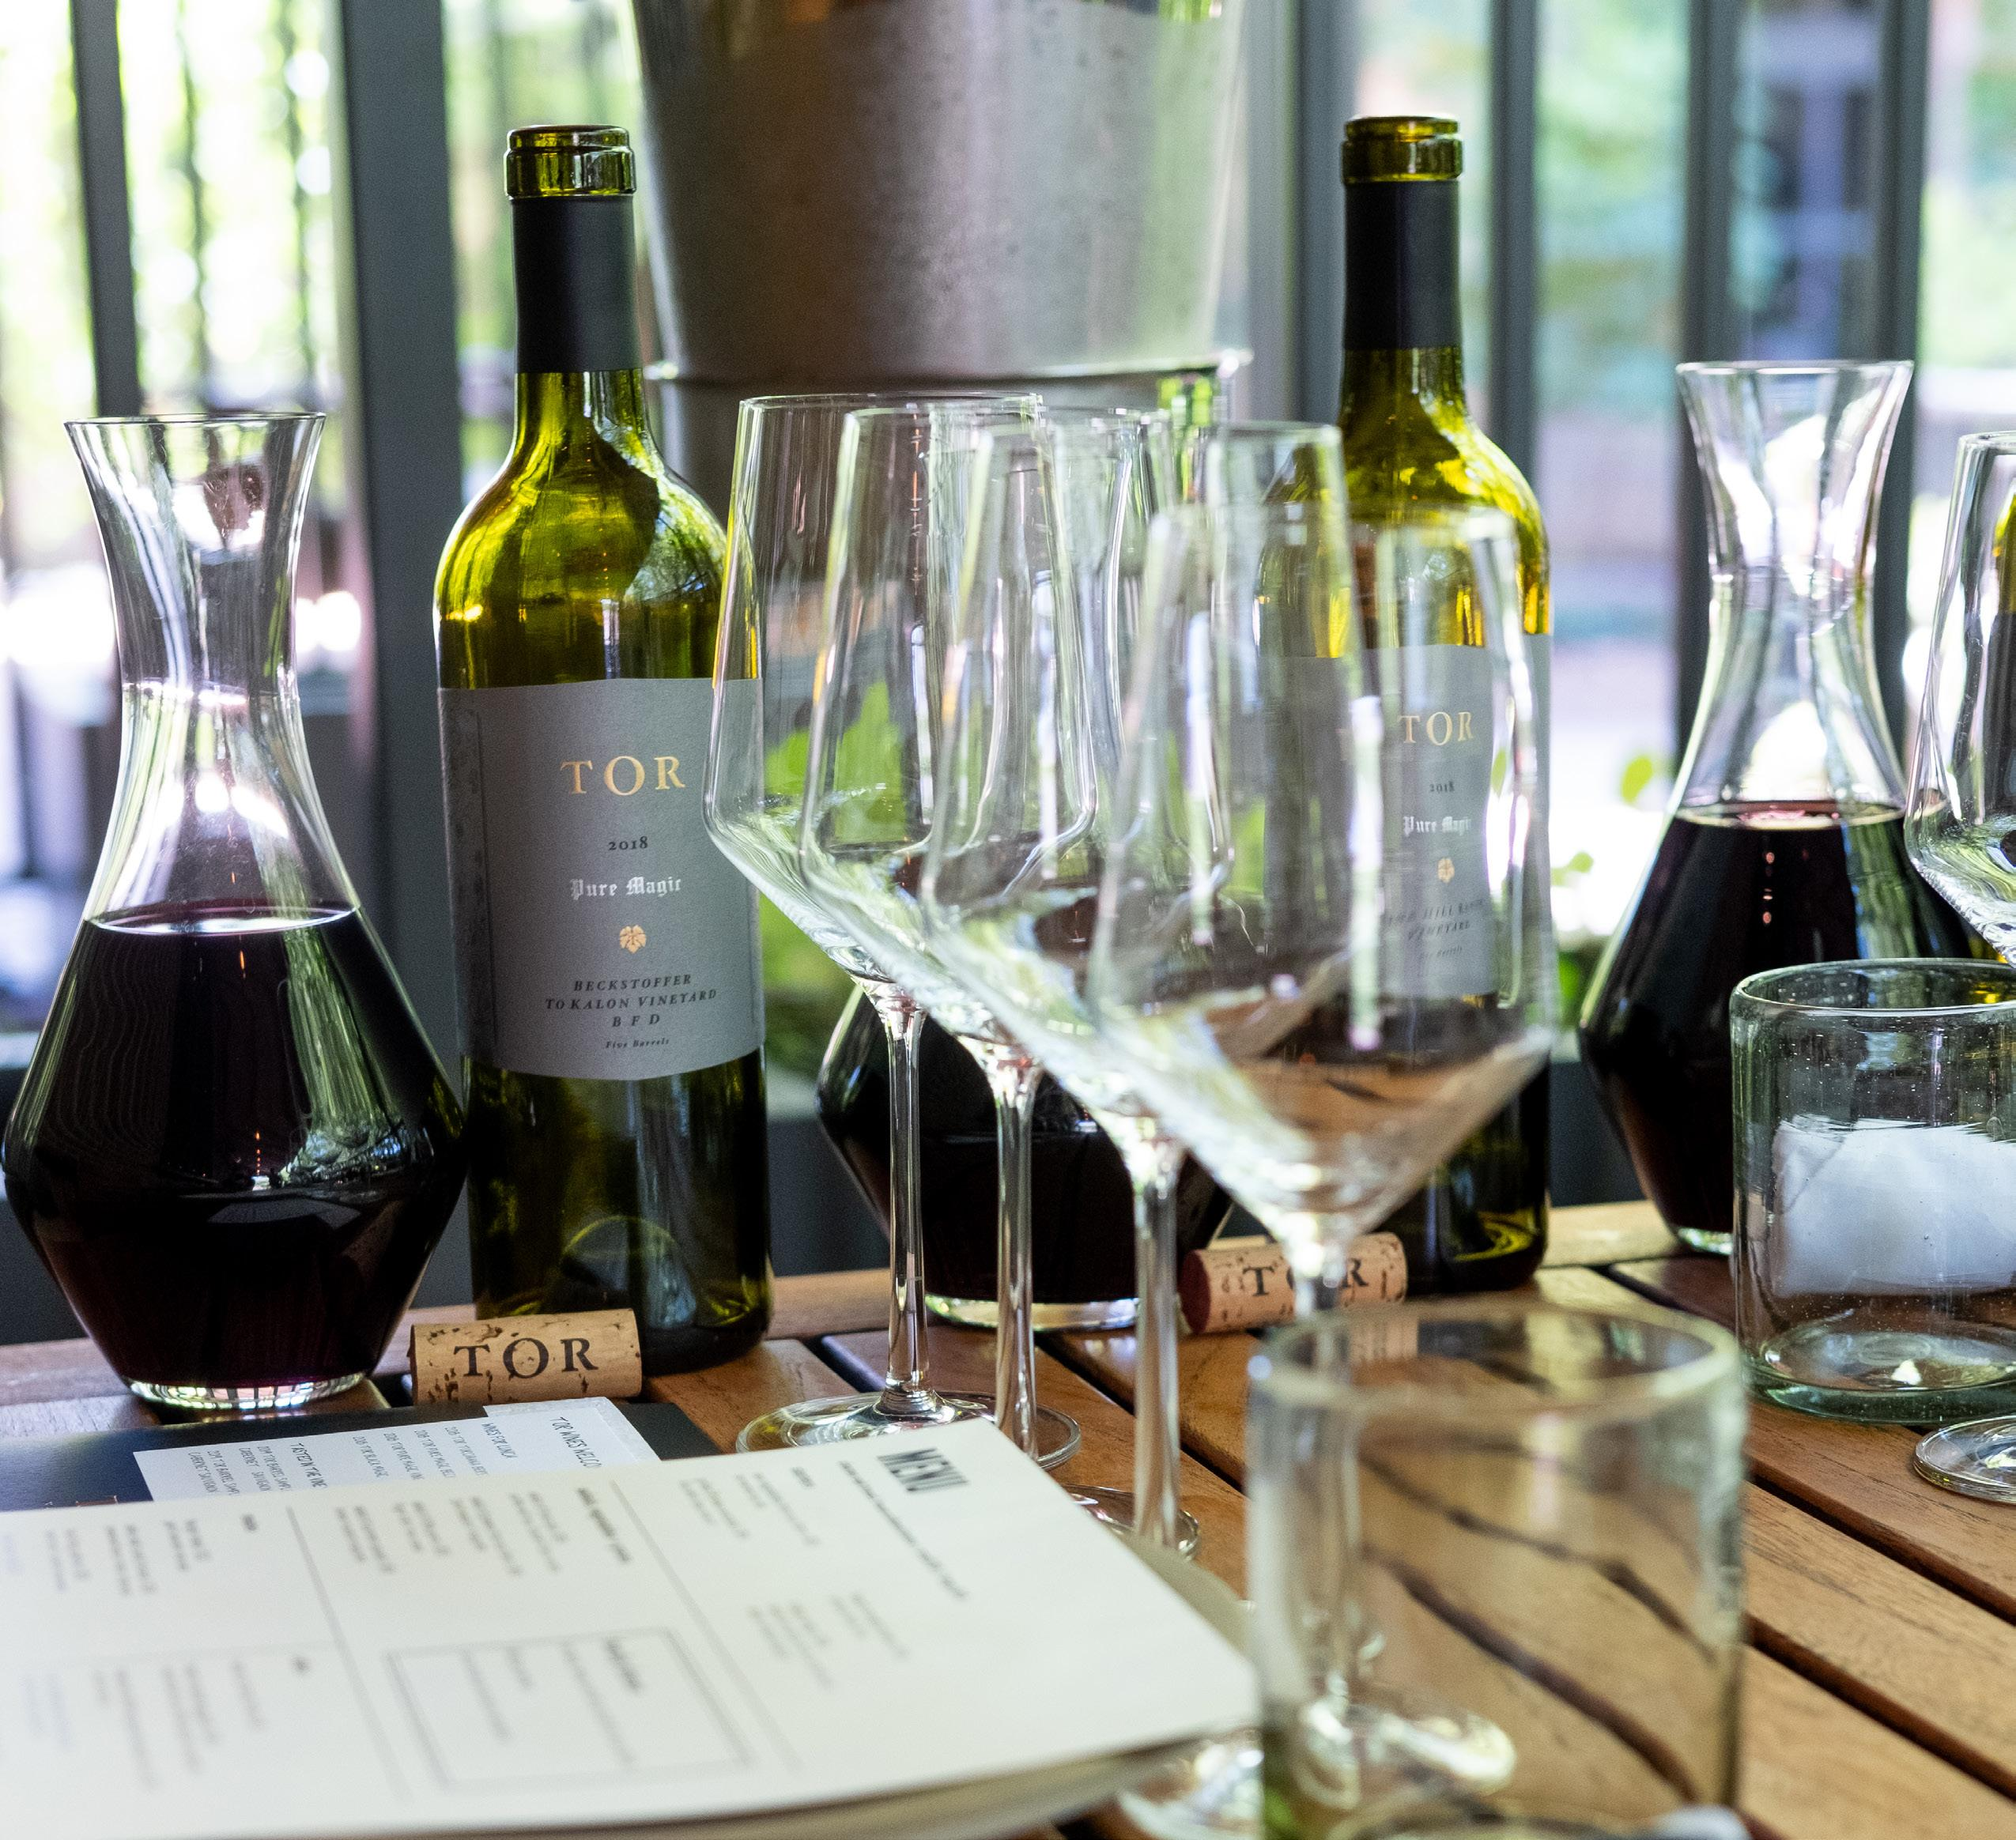 Page 58 of TOR Napa Valley Announces Four New Private Tasting Experiences for Summer and Harvest